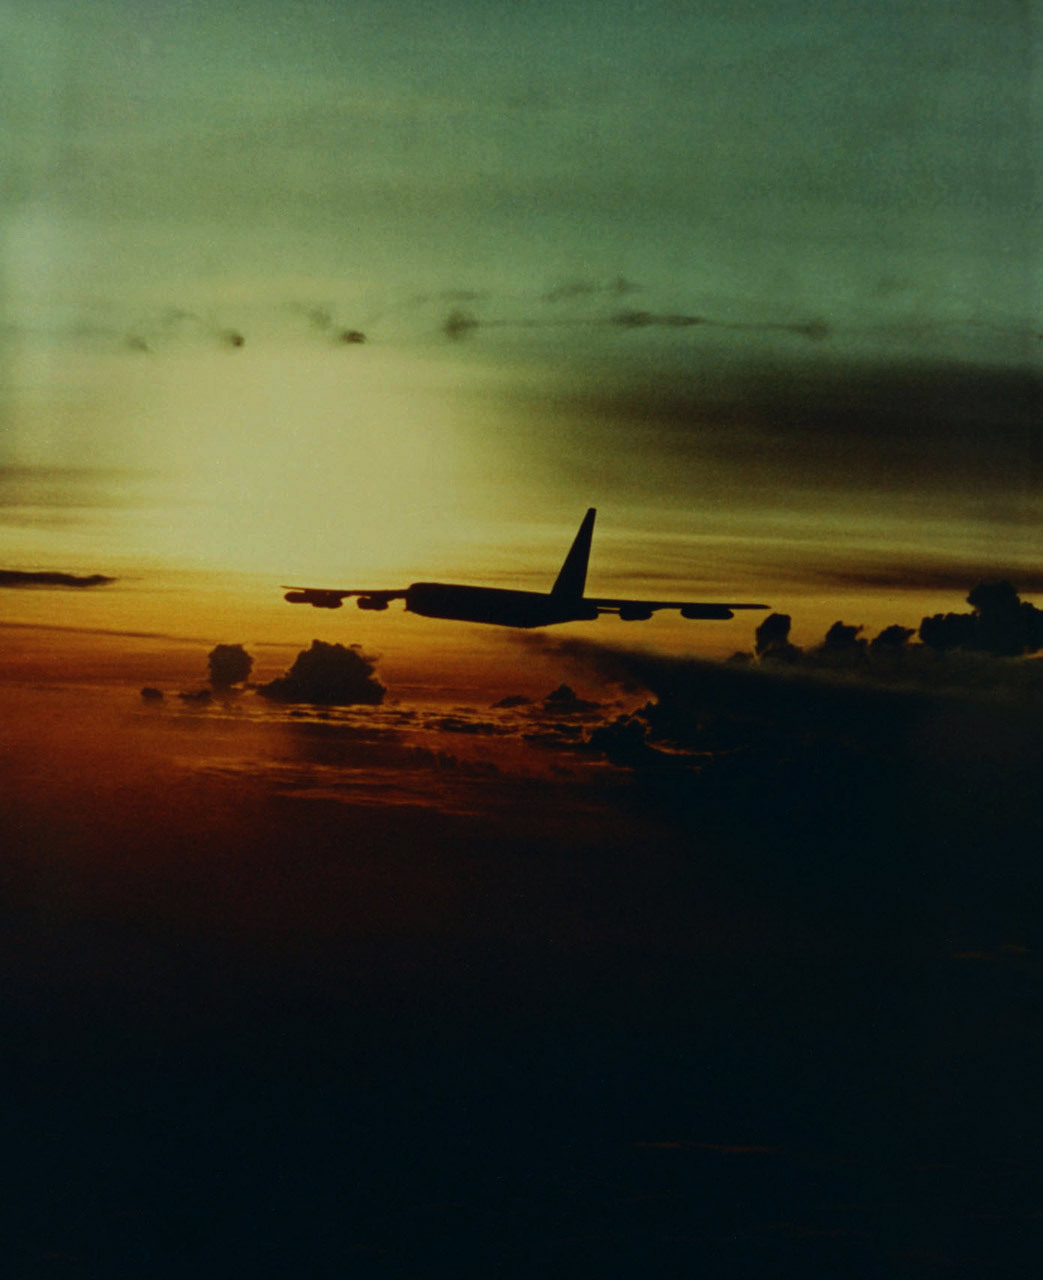 melisaki:  307th Strategic Wing B-52D Operation Linebacker, North Vietnam, 1972